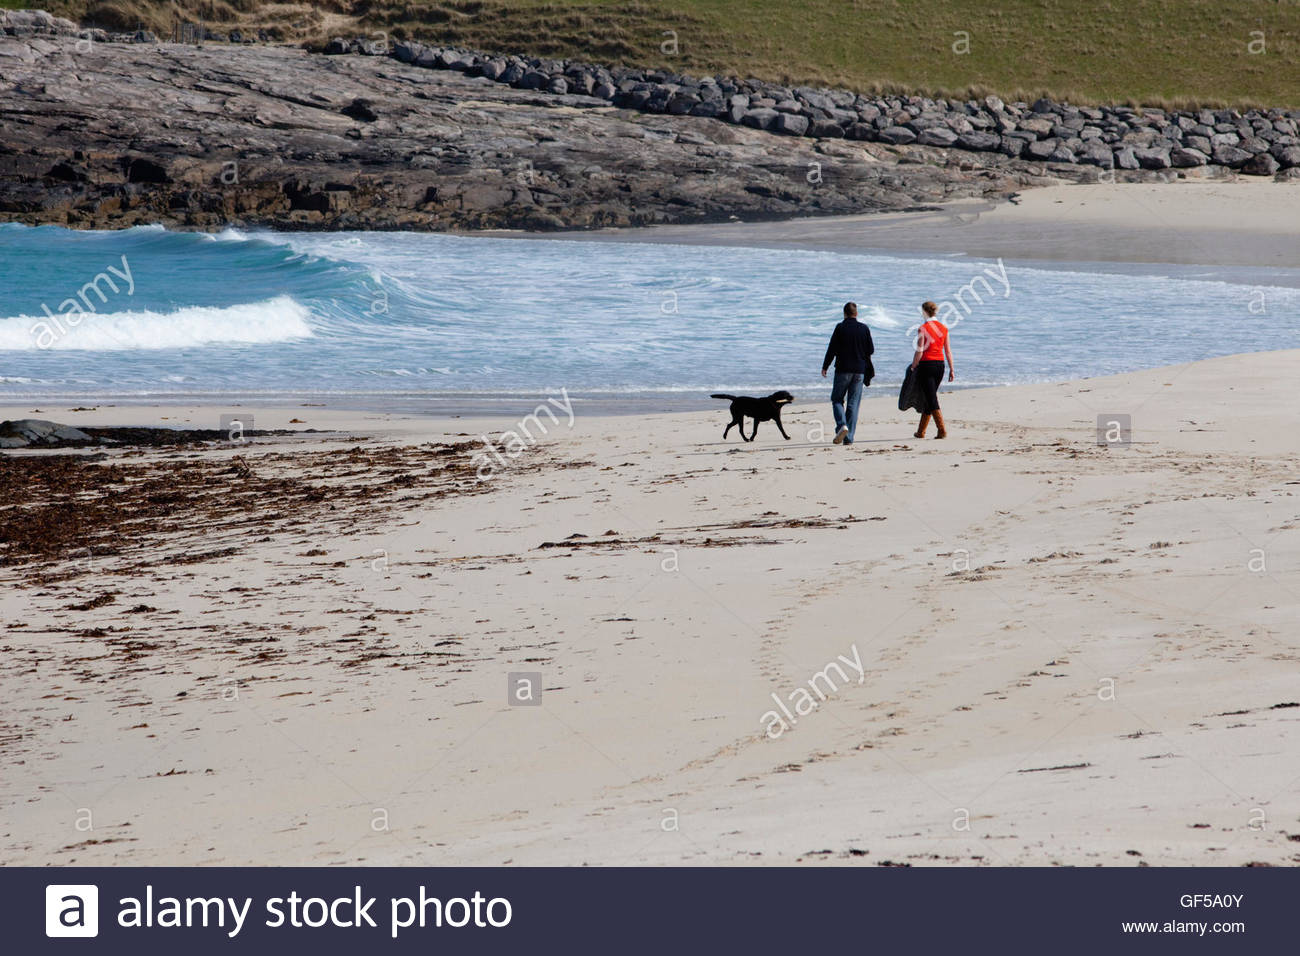 A couple walking their dog on Tangasdale Beach, Isle of Barra, Outer Hebrides.  Scotland - Stock Image